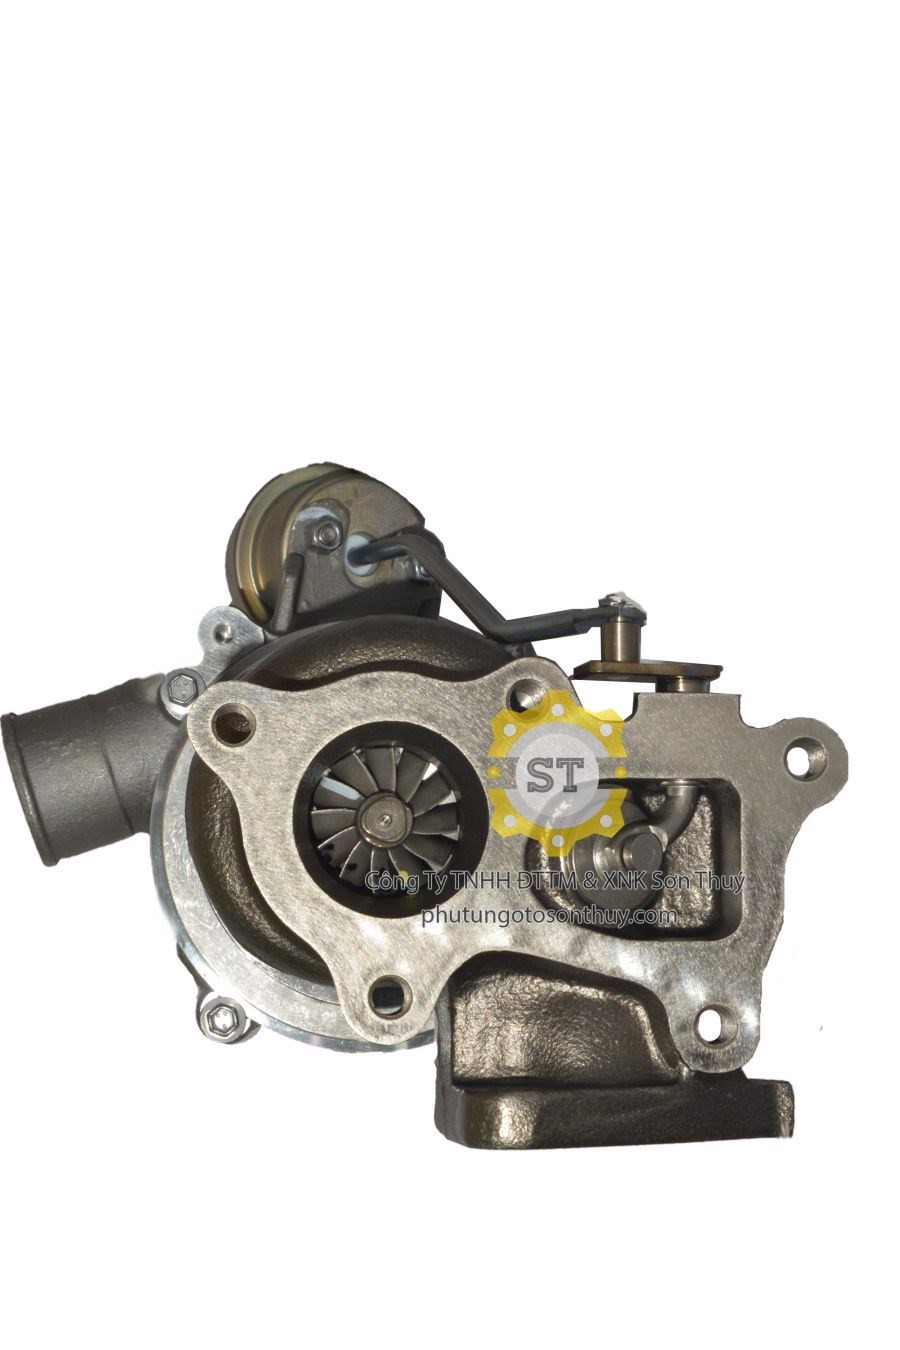 TURBO 1T MB 28200-42560